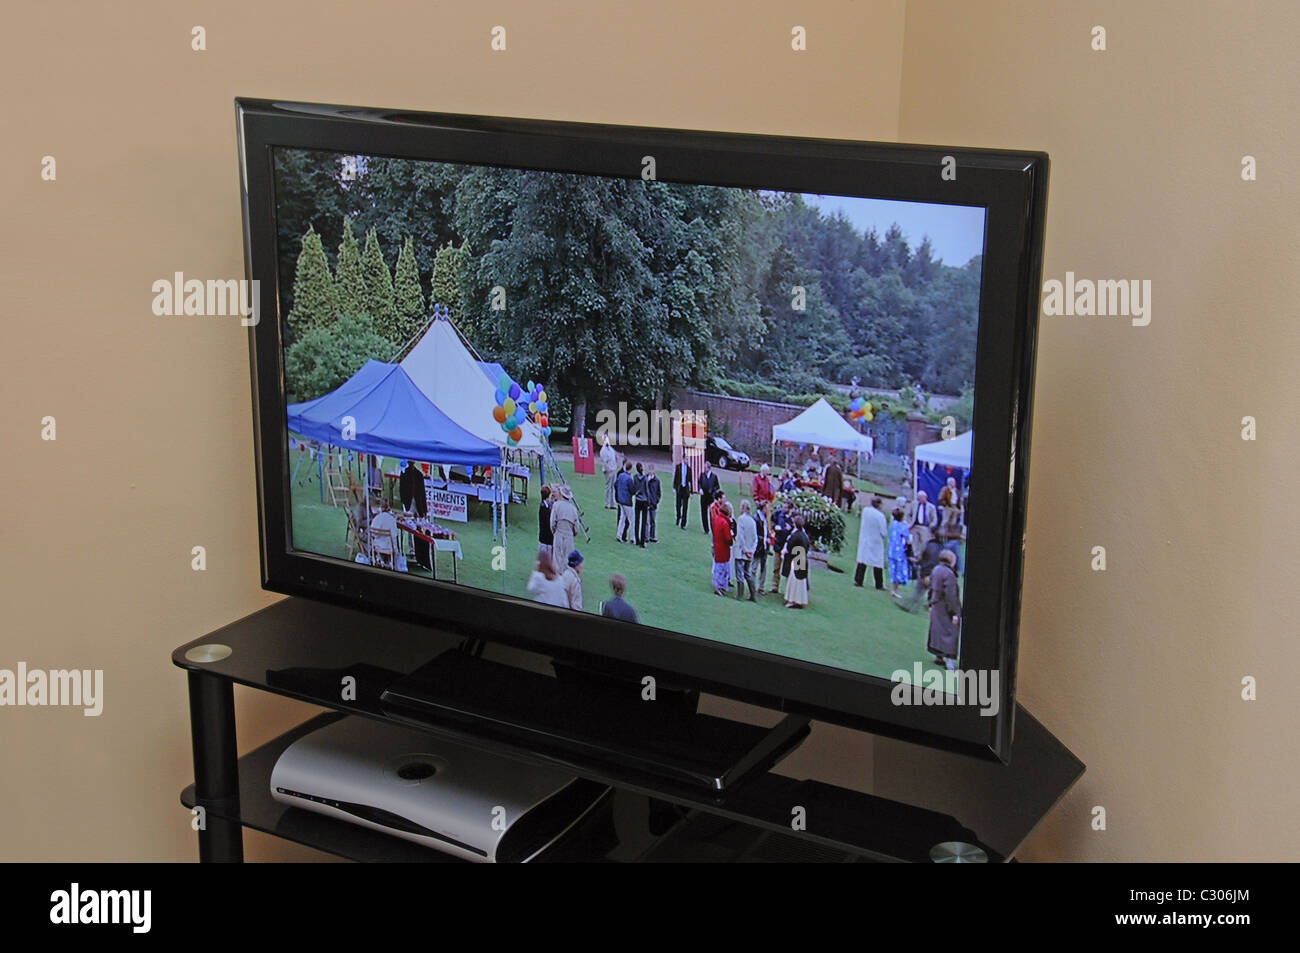 Widescreen high definition LCD television. - Stock Image